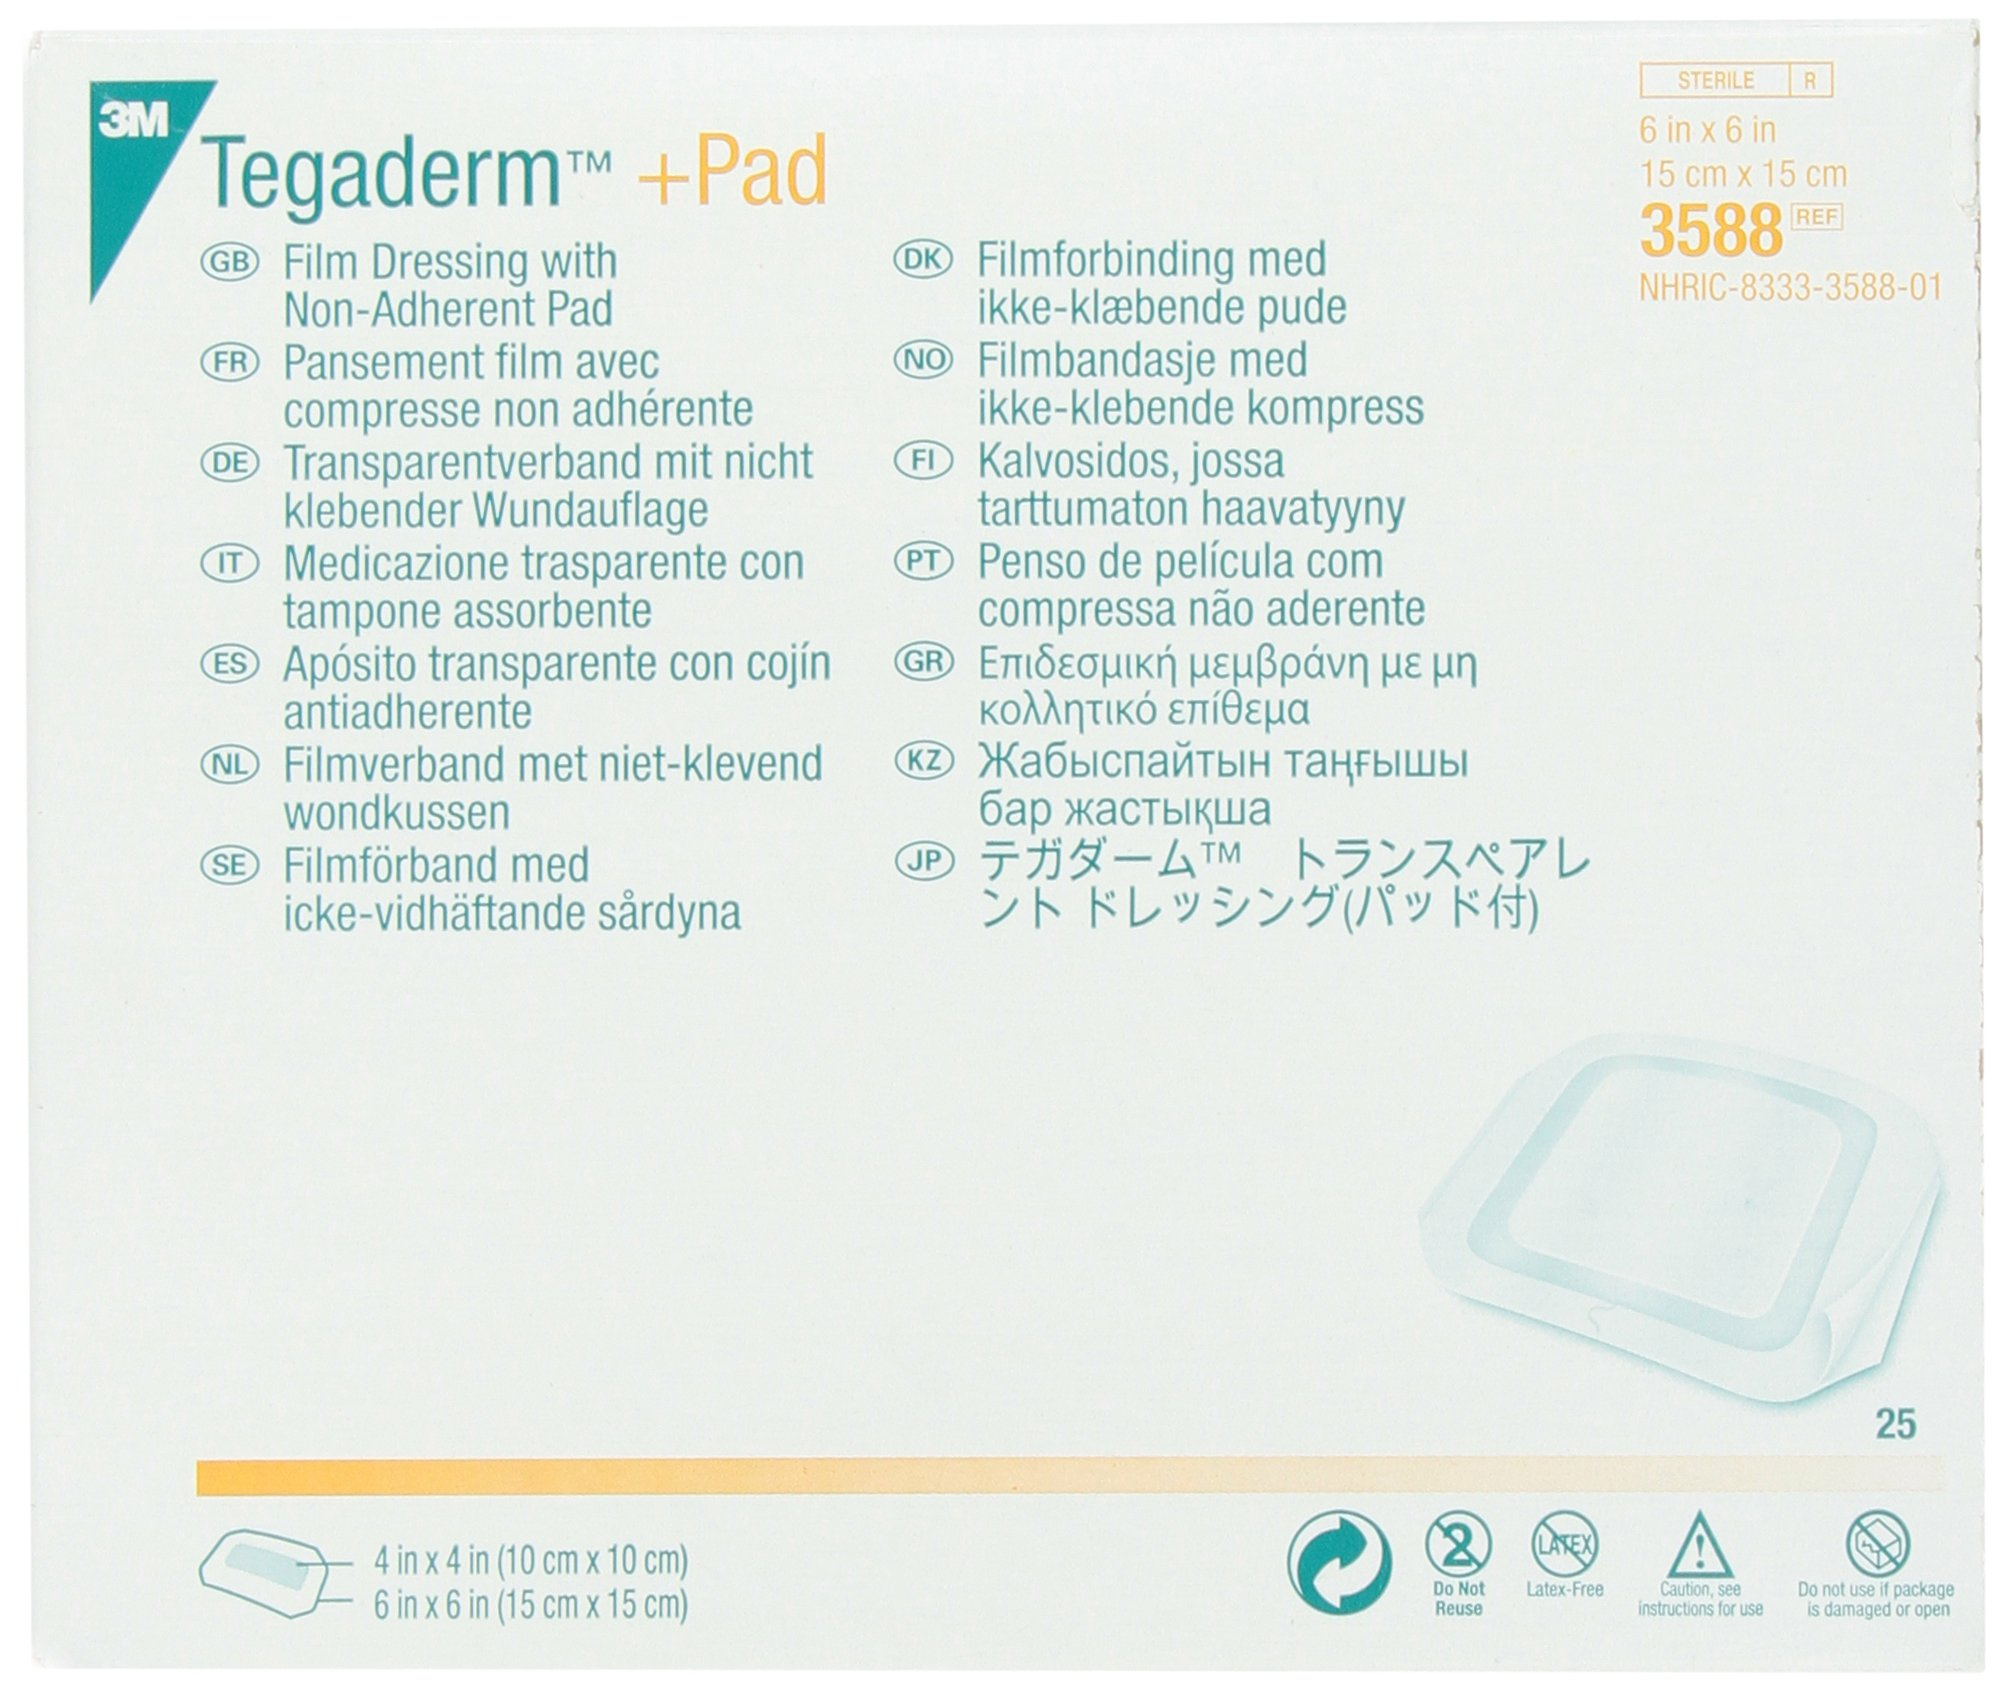 3M 3588 Tegaderm +Pad Film Dressing with Non-Adherent Pad, 25 Pads Per Pack (Pack of 1) by 3M